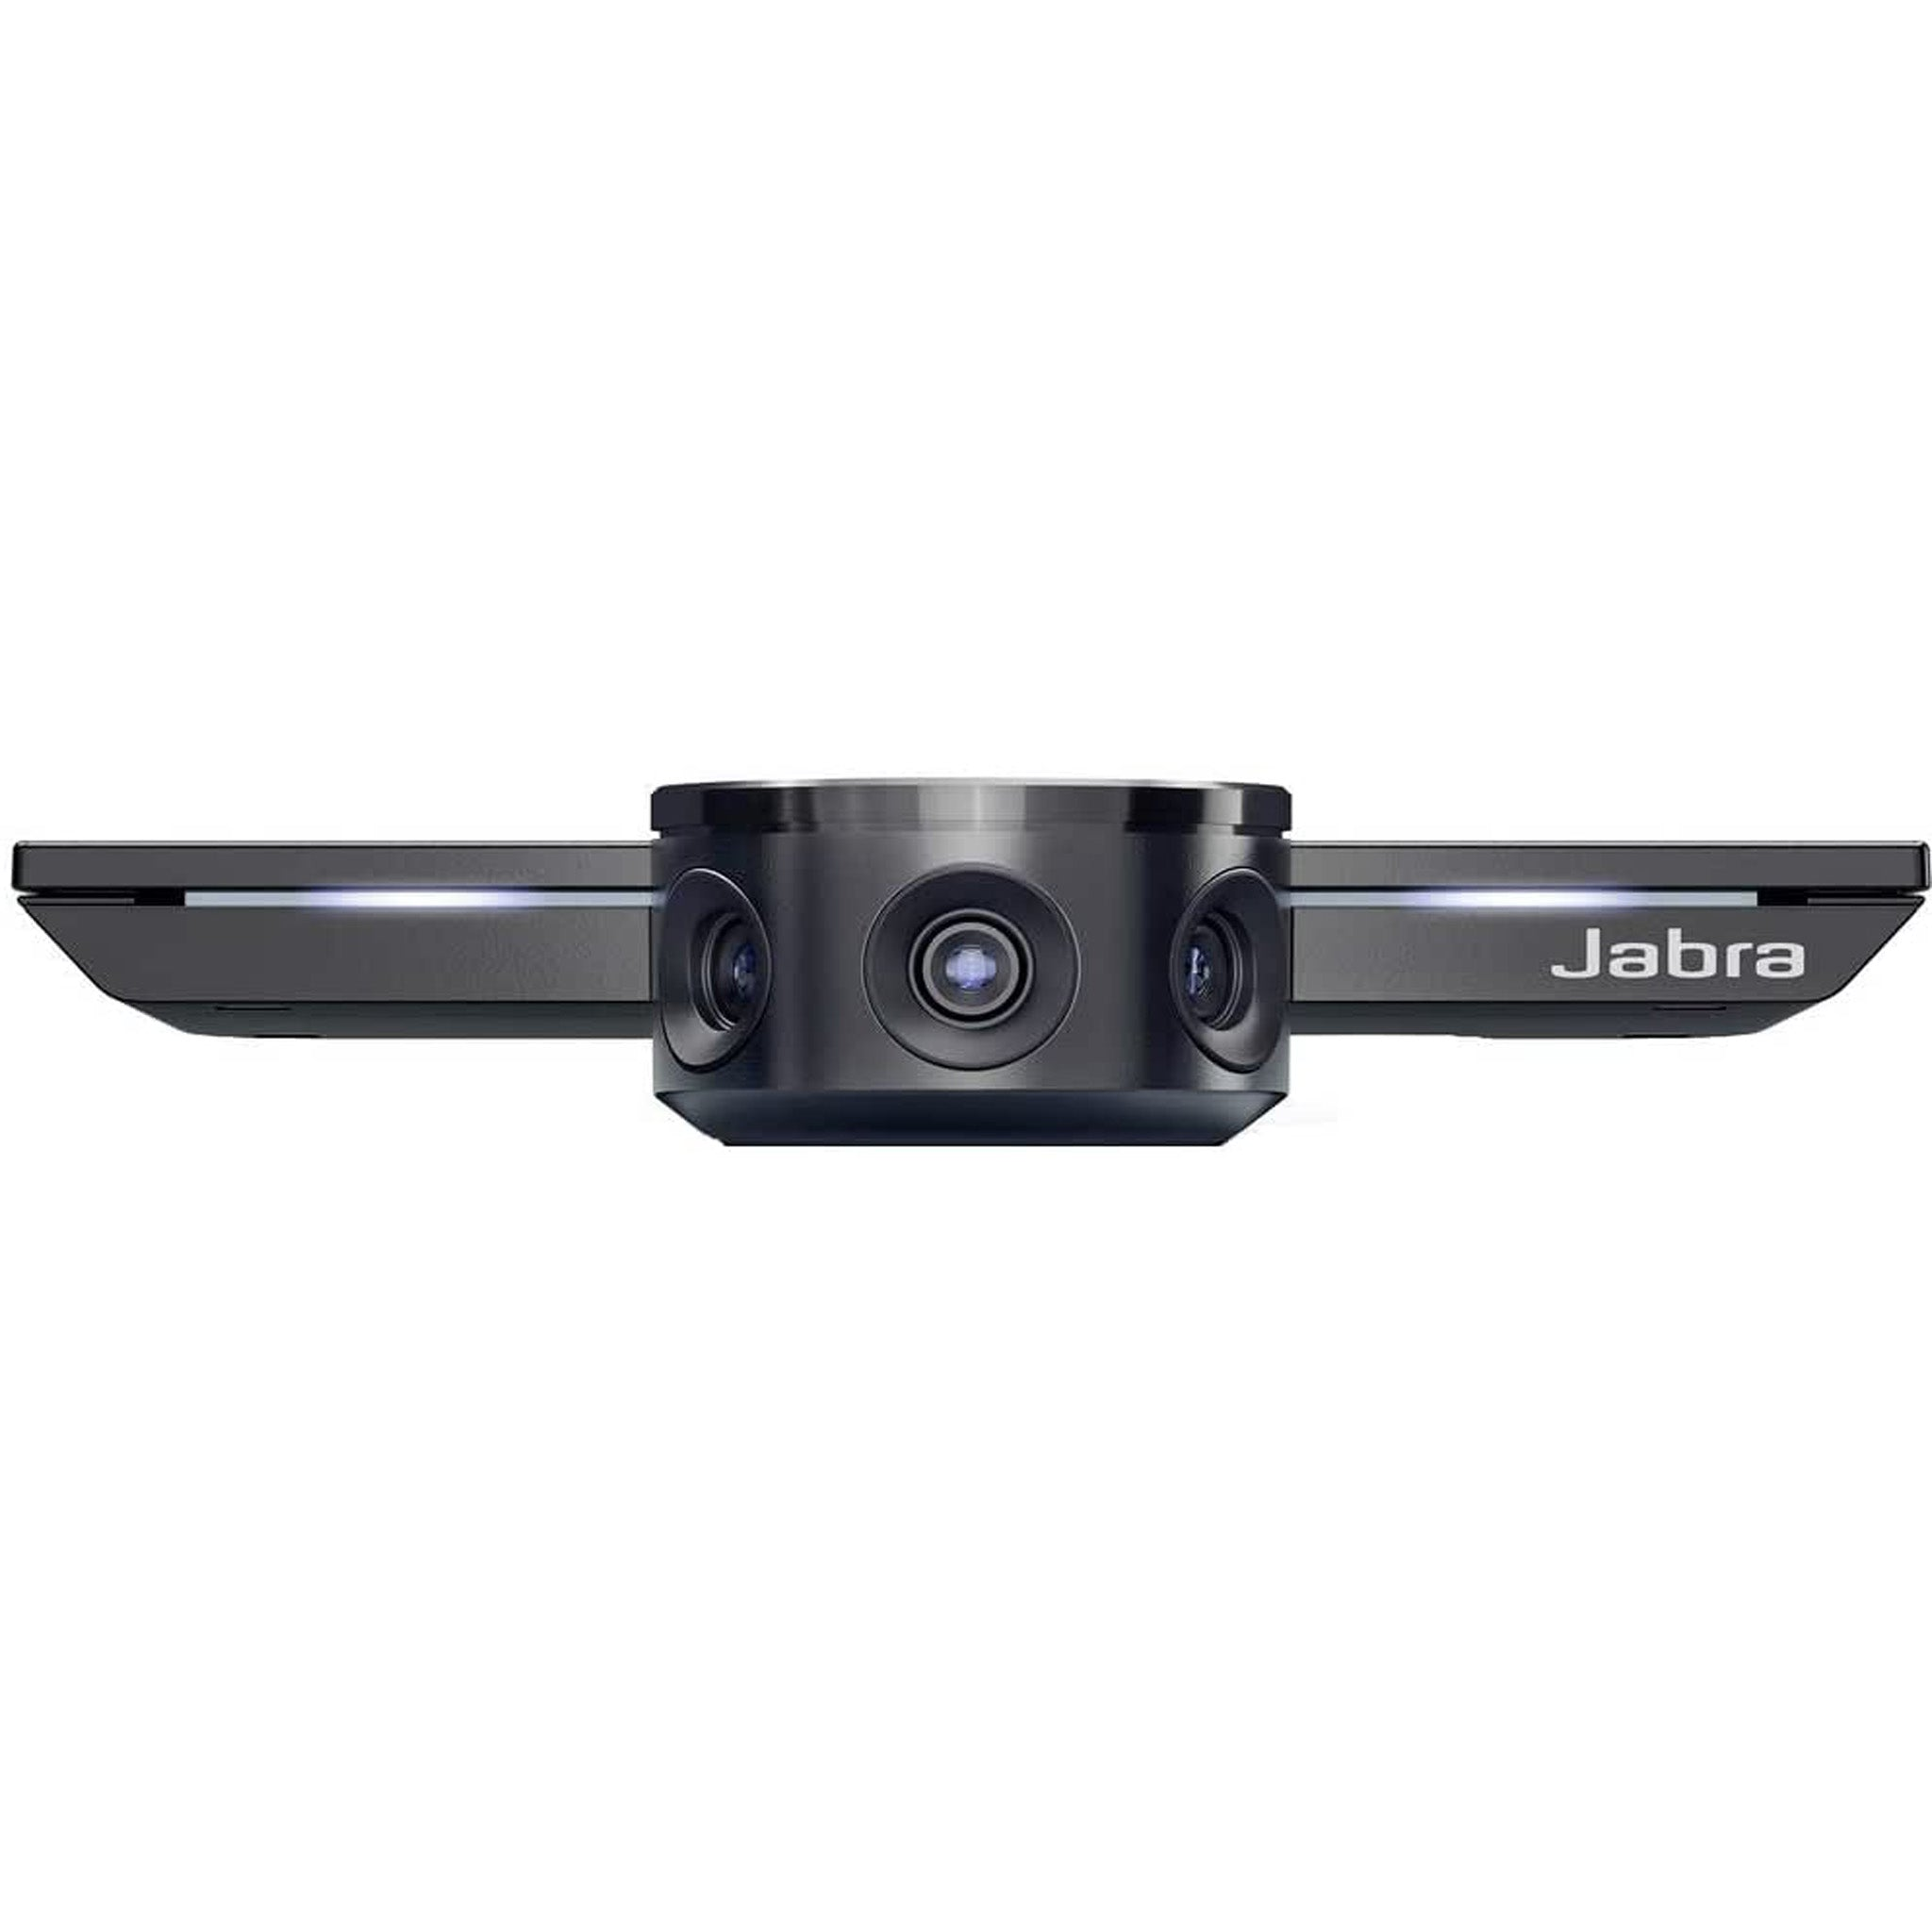 Jabra PanaCast MS - Panoramic camera